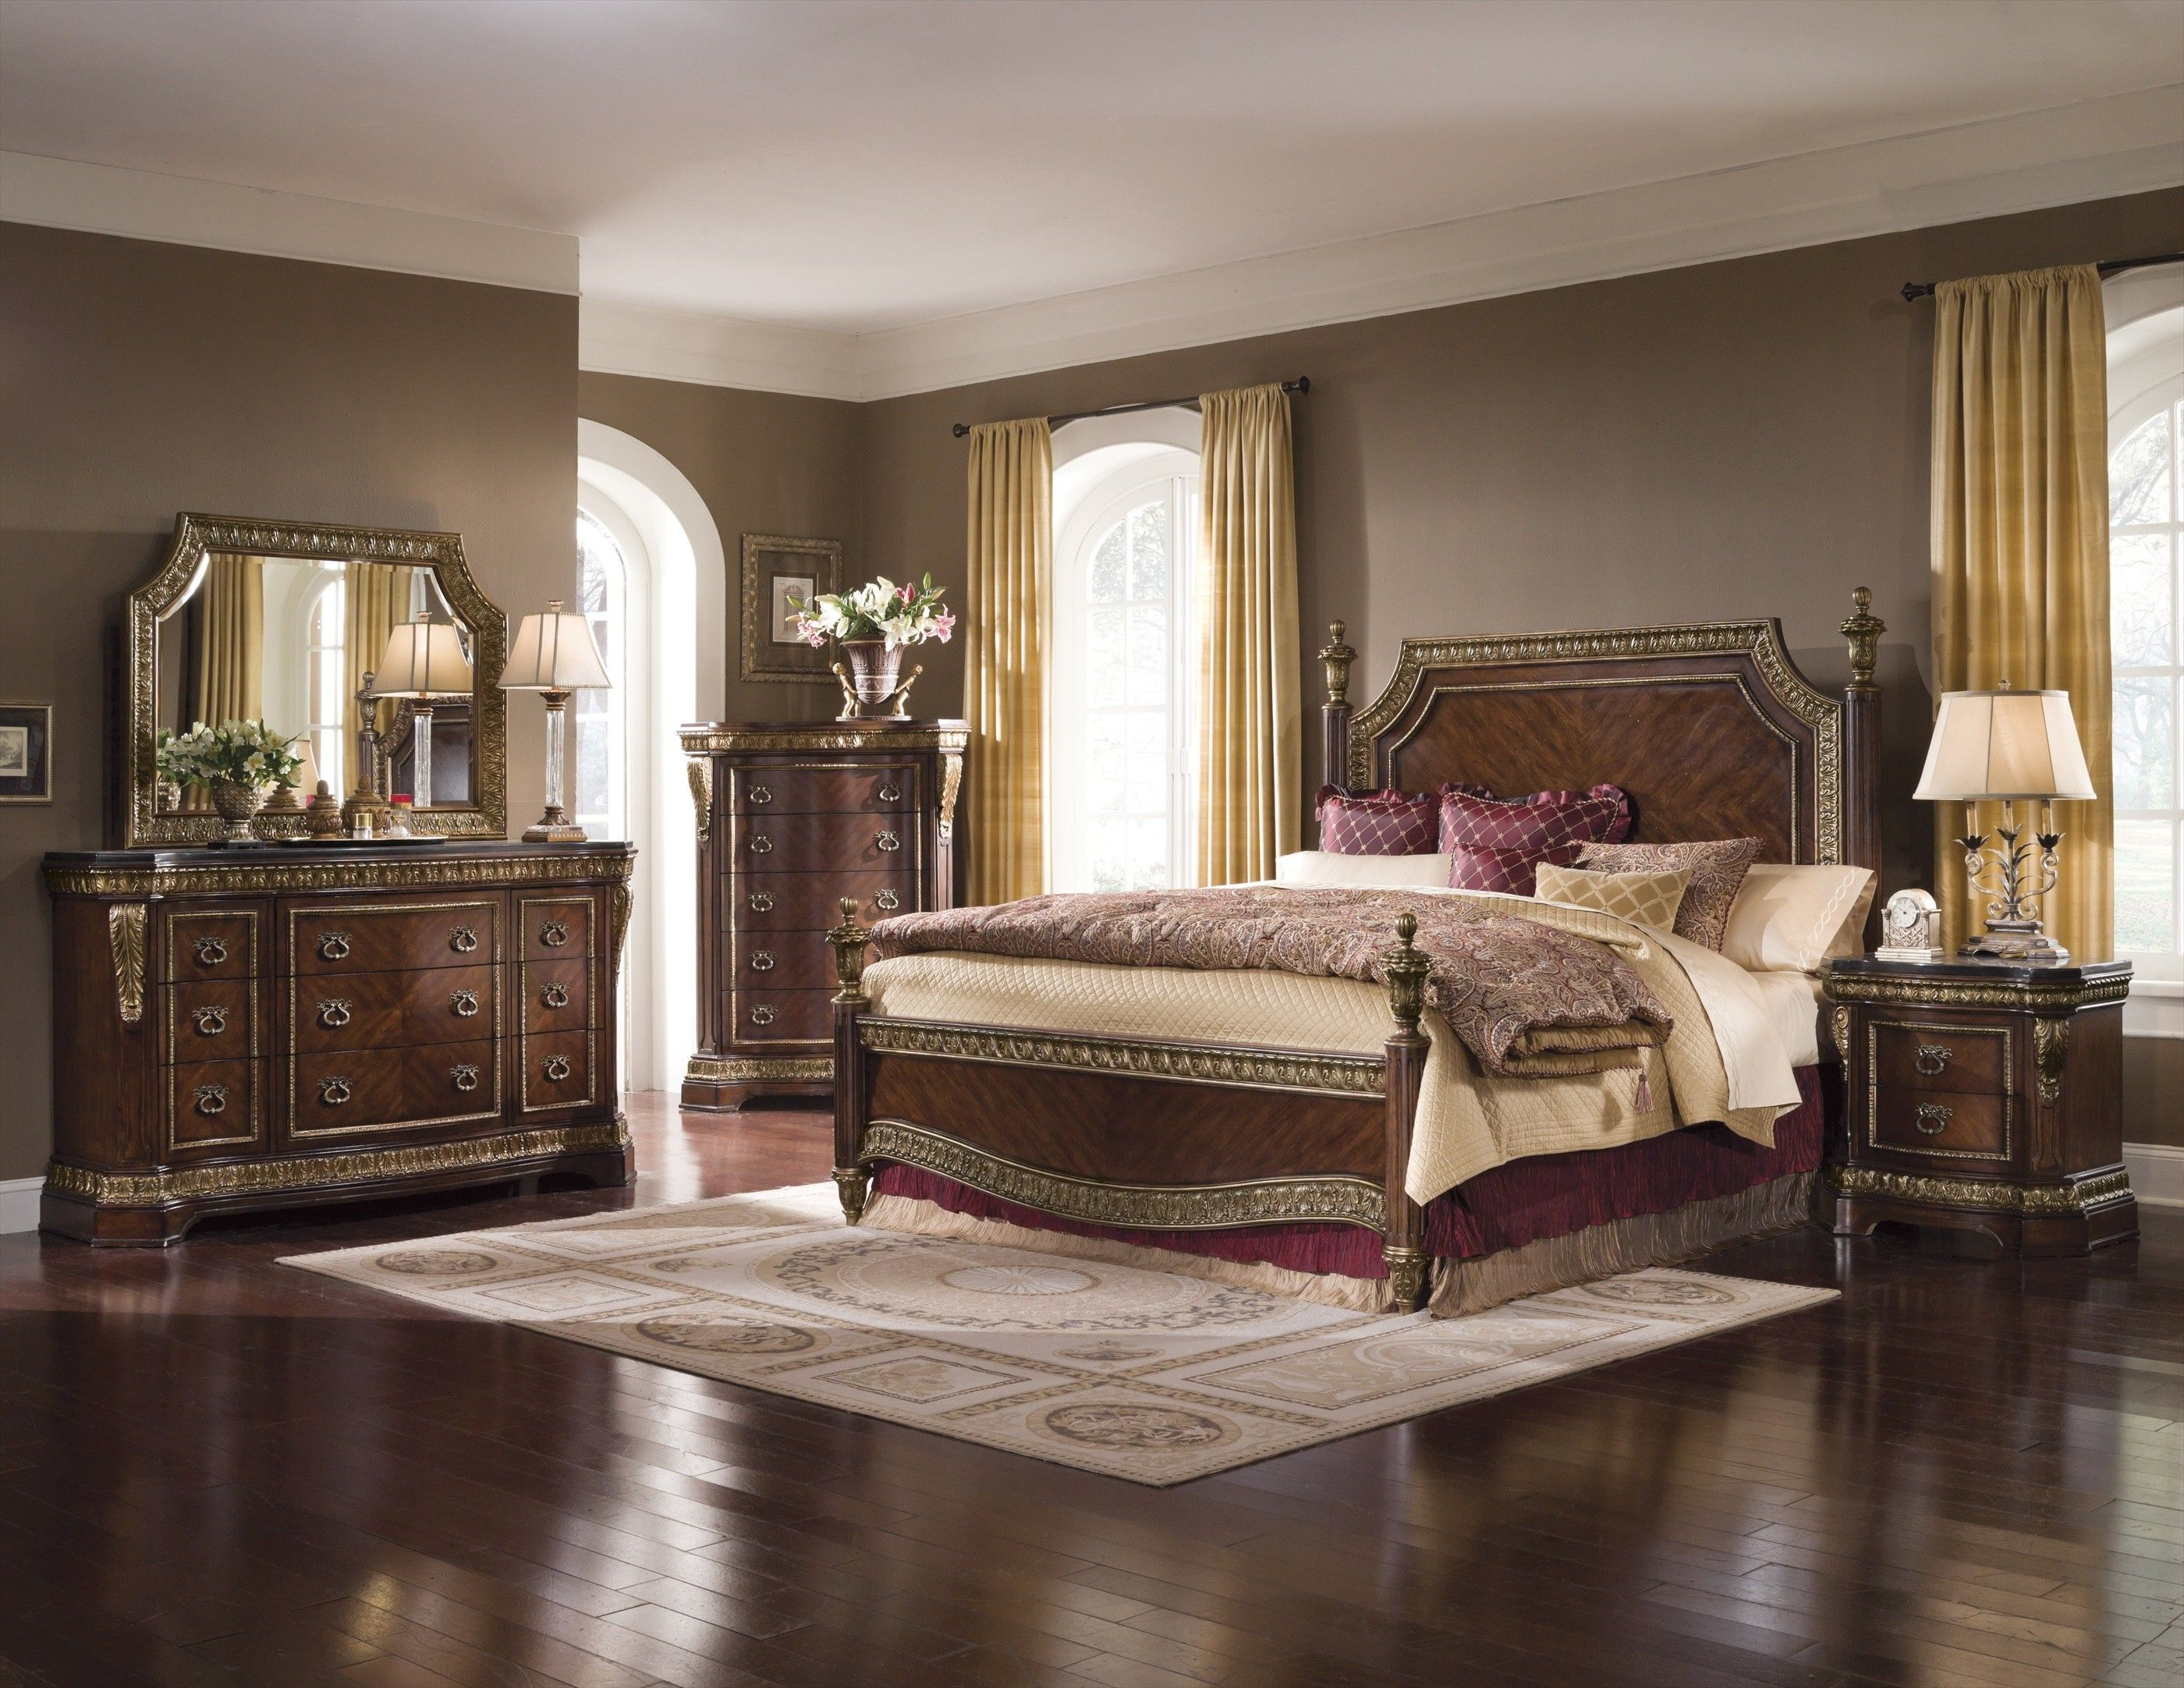 Luxury Bedrooms White And Gold Louis Xvi Style Furniture White Furniture Inspiration White Bedroom Decor Luxurious Bedrooms